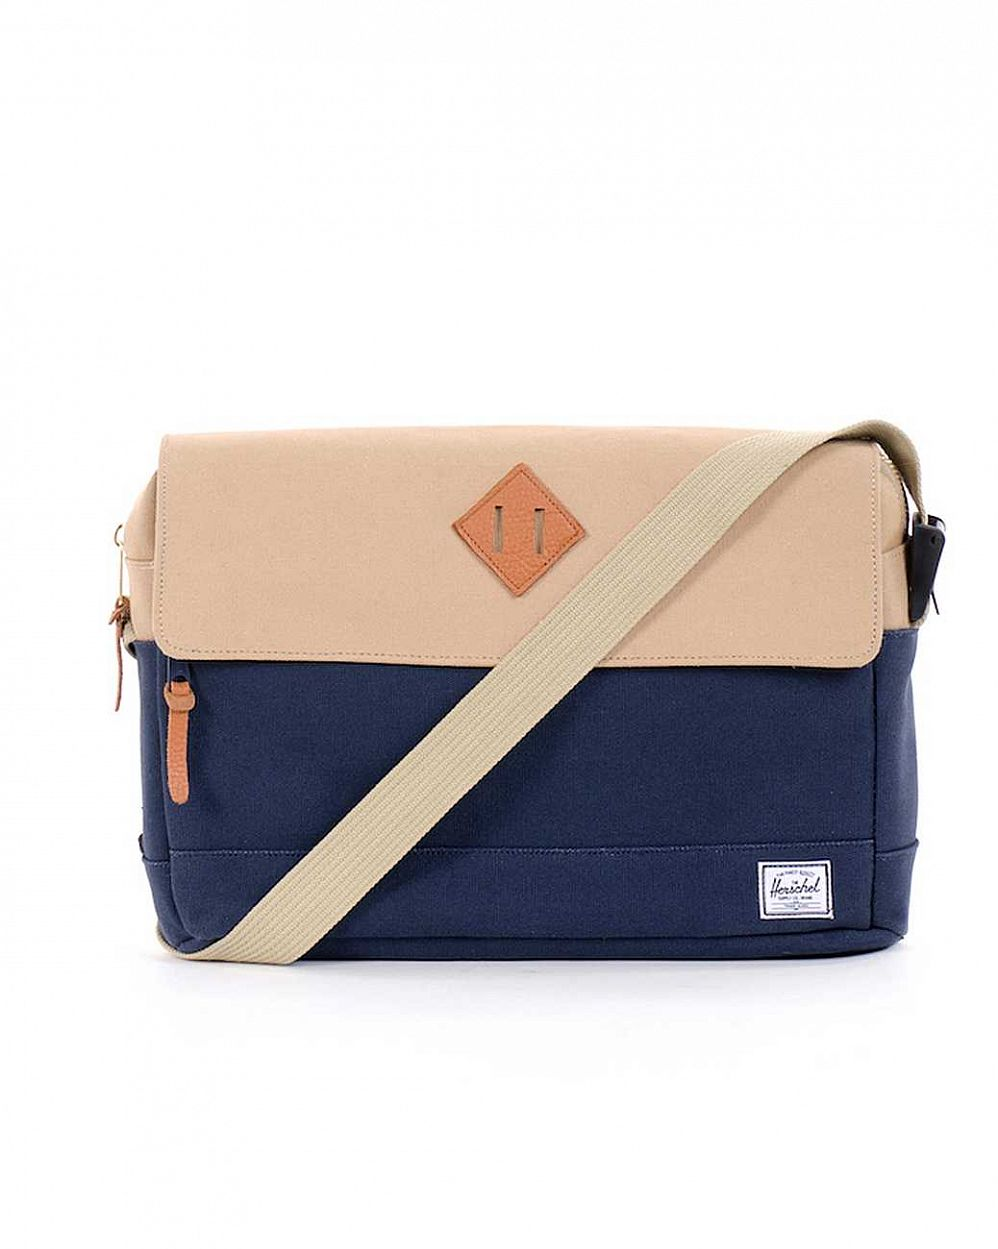 Сумка Herschel Morgan (20oz Canvas) Navy 20oz отзывы